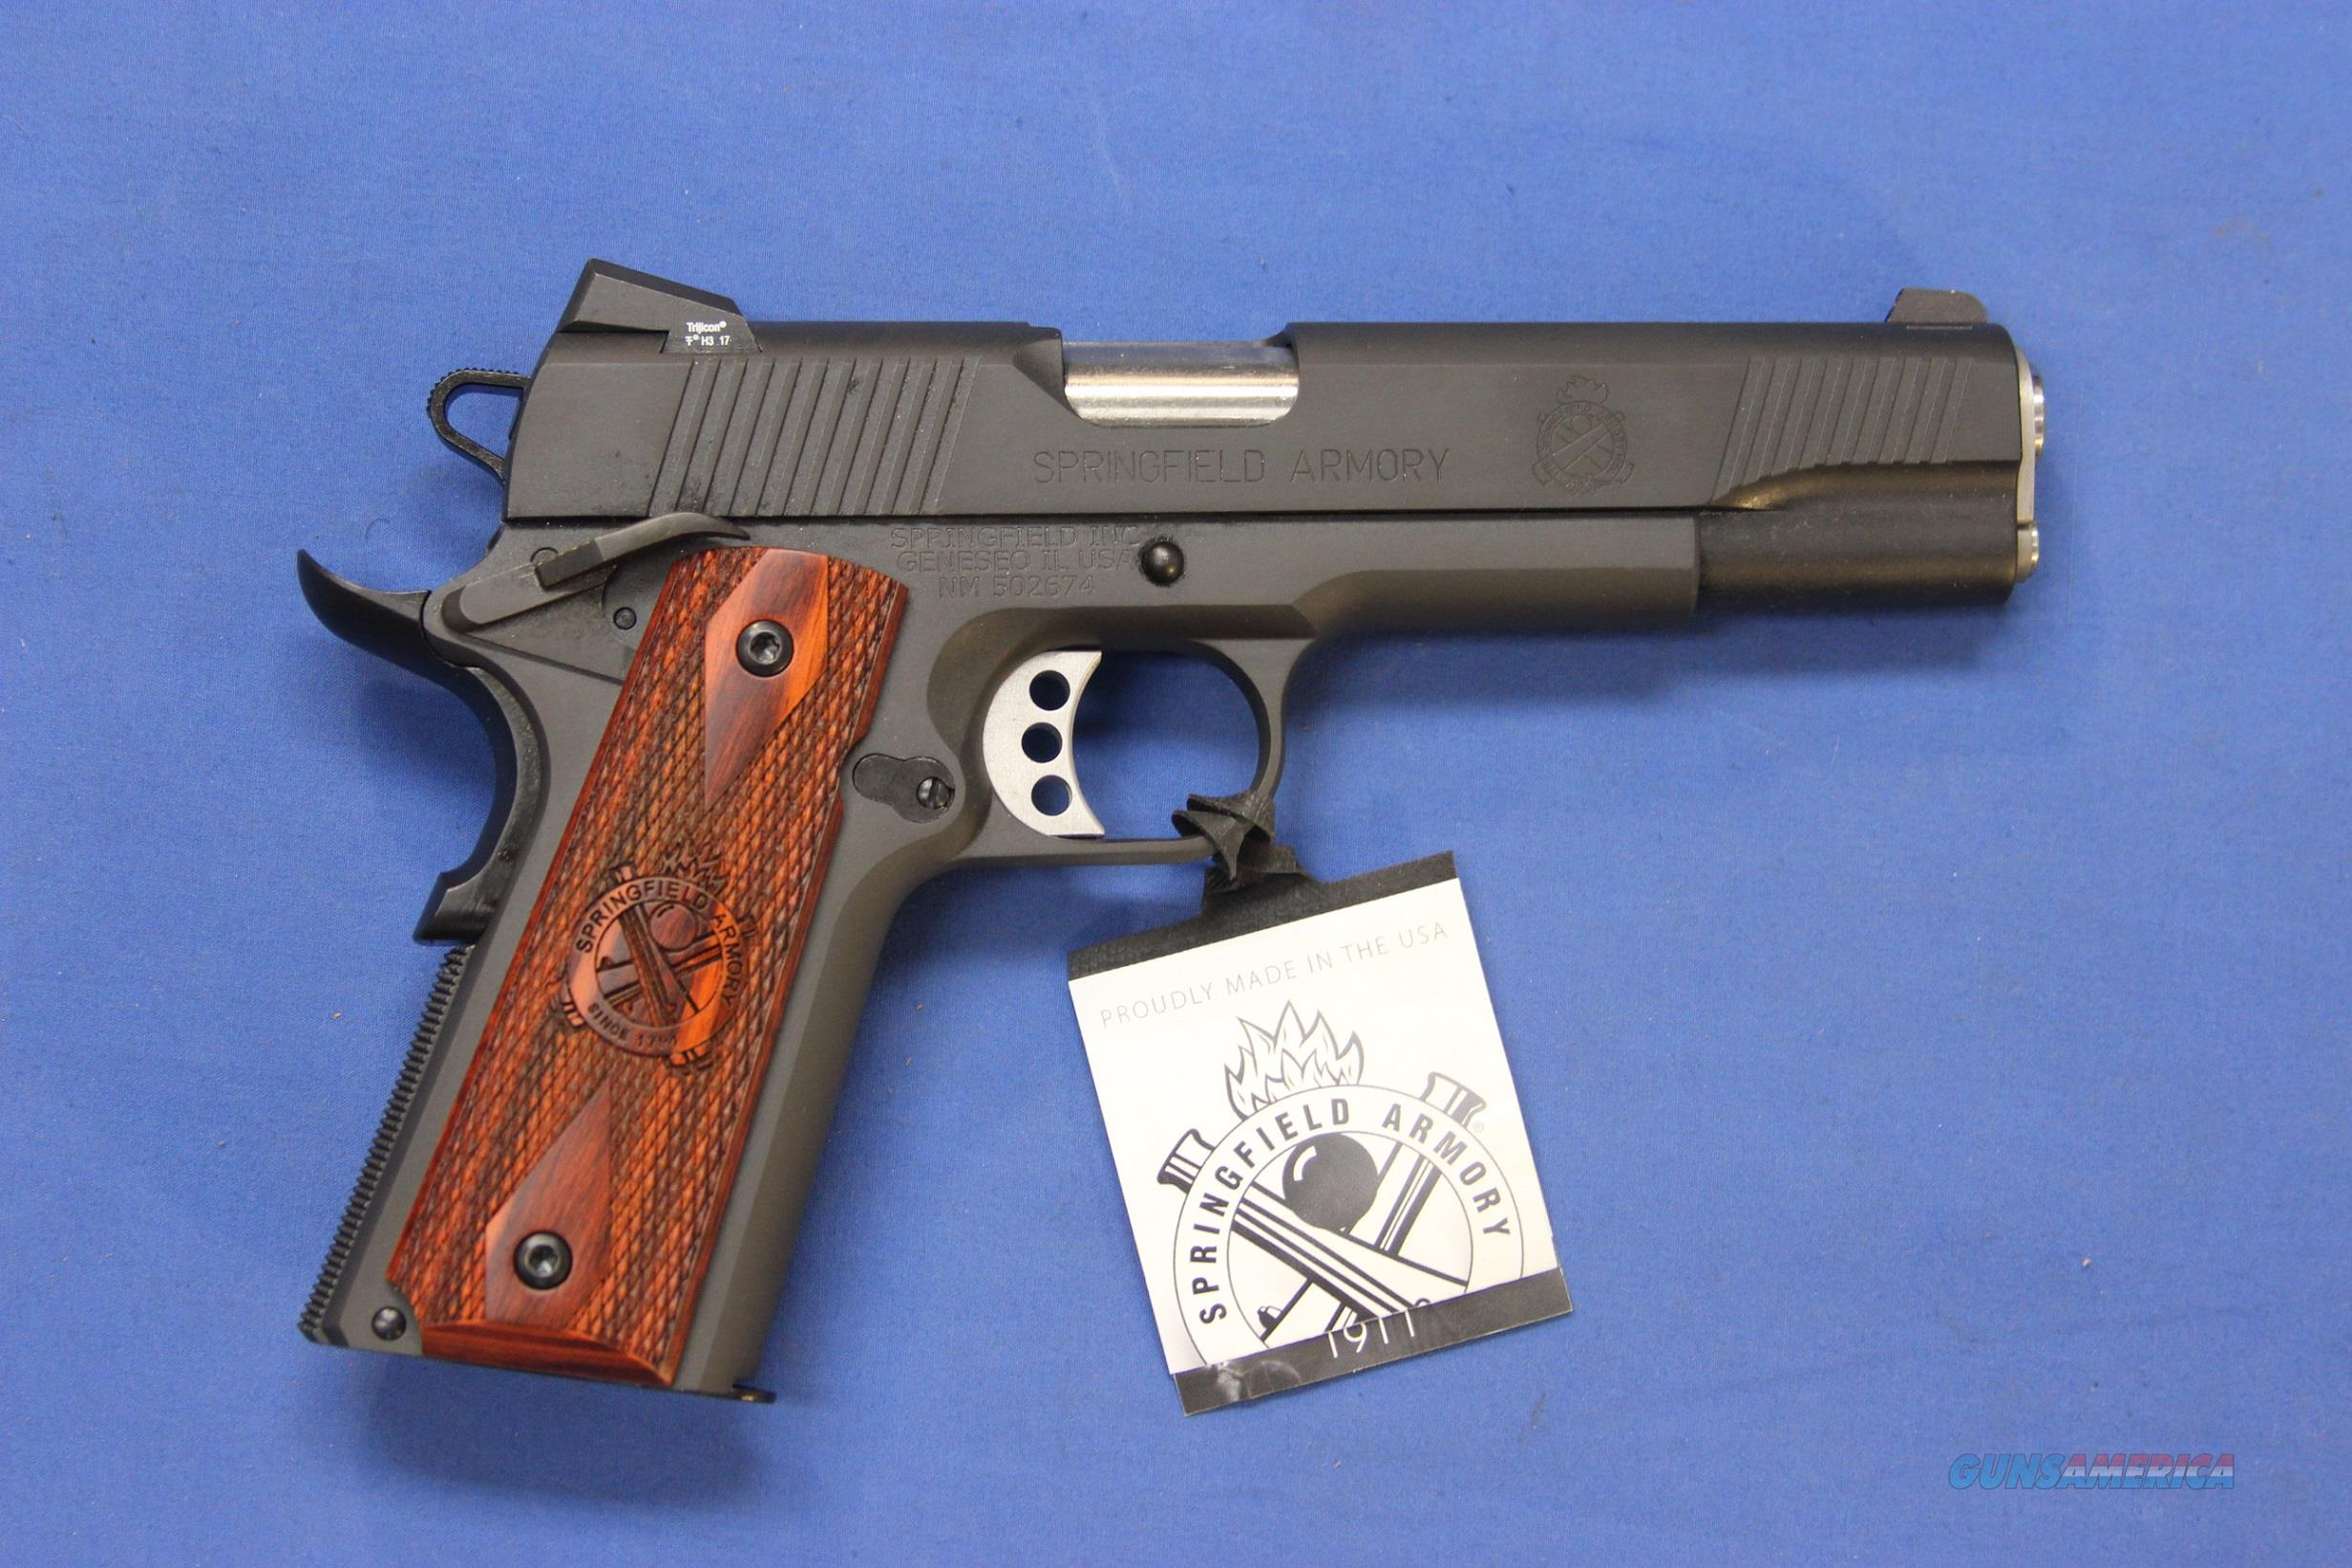 A1 Auto Sales >> SPRINGFIELD ARMORY 1911 LOADED .45 ACP - NEW! for sale